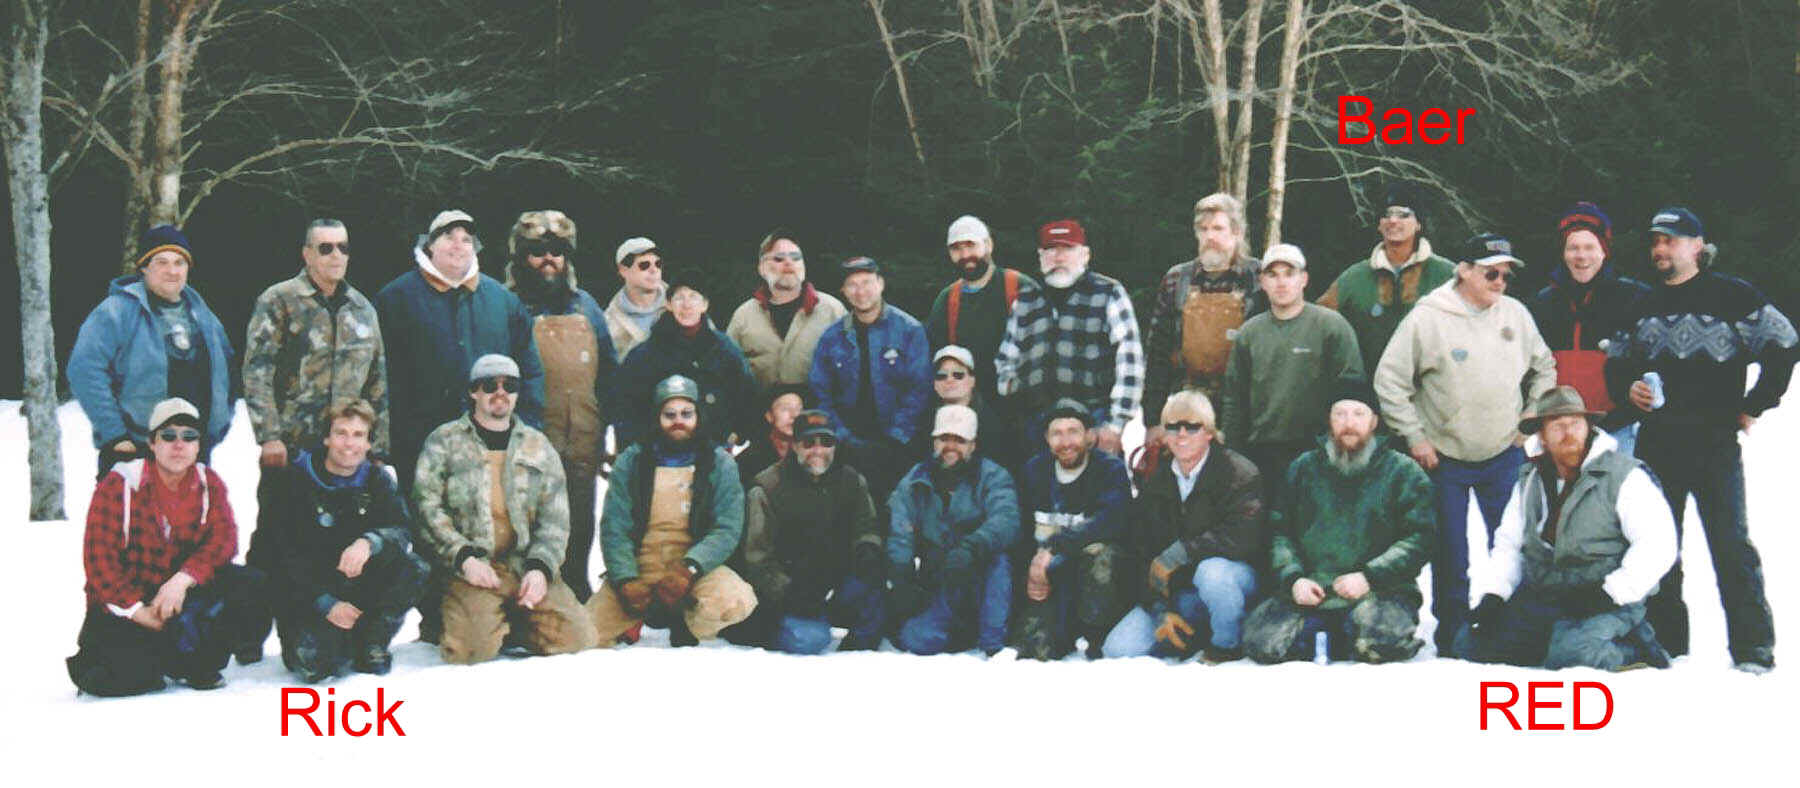 Carvers from the Ridgway Mid - Winter Rendezvous 2000